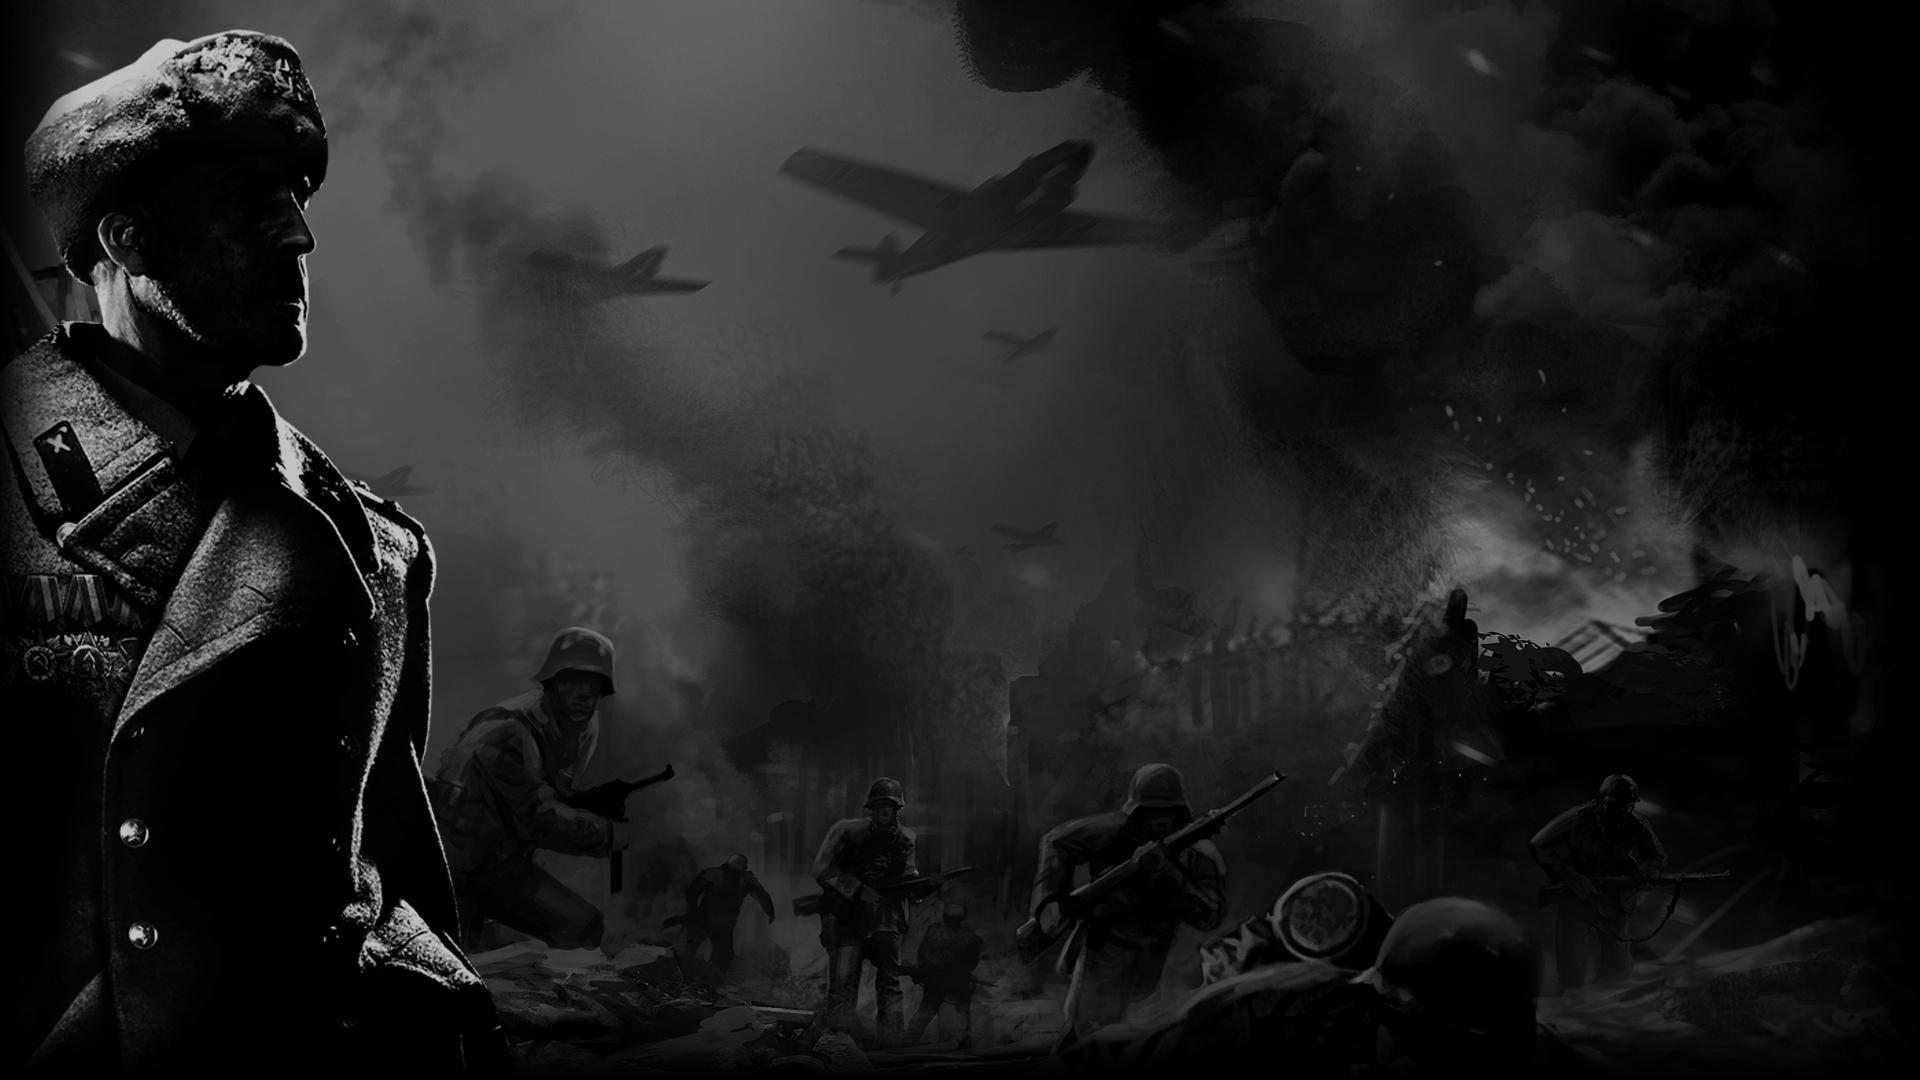 Company Of Heroes 2 Wallpaper Hd Download